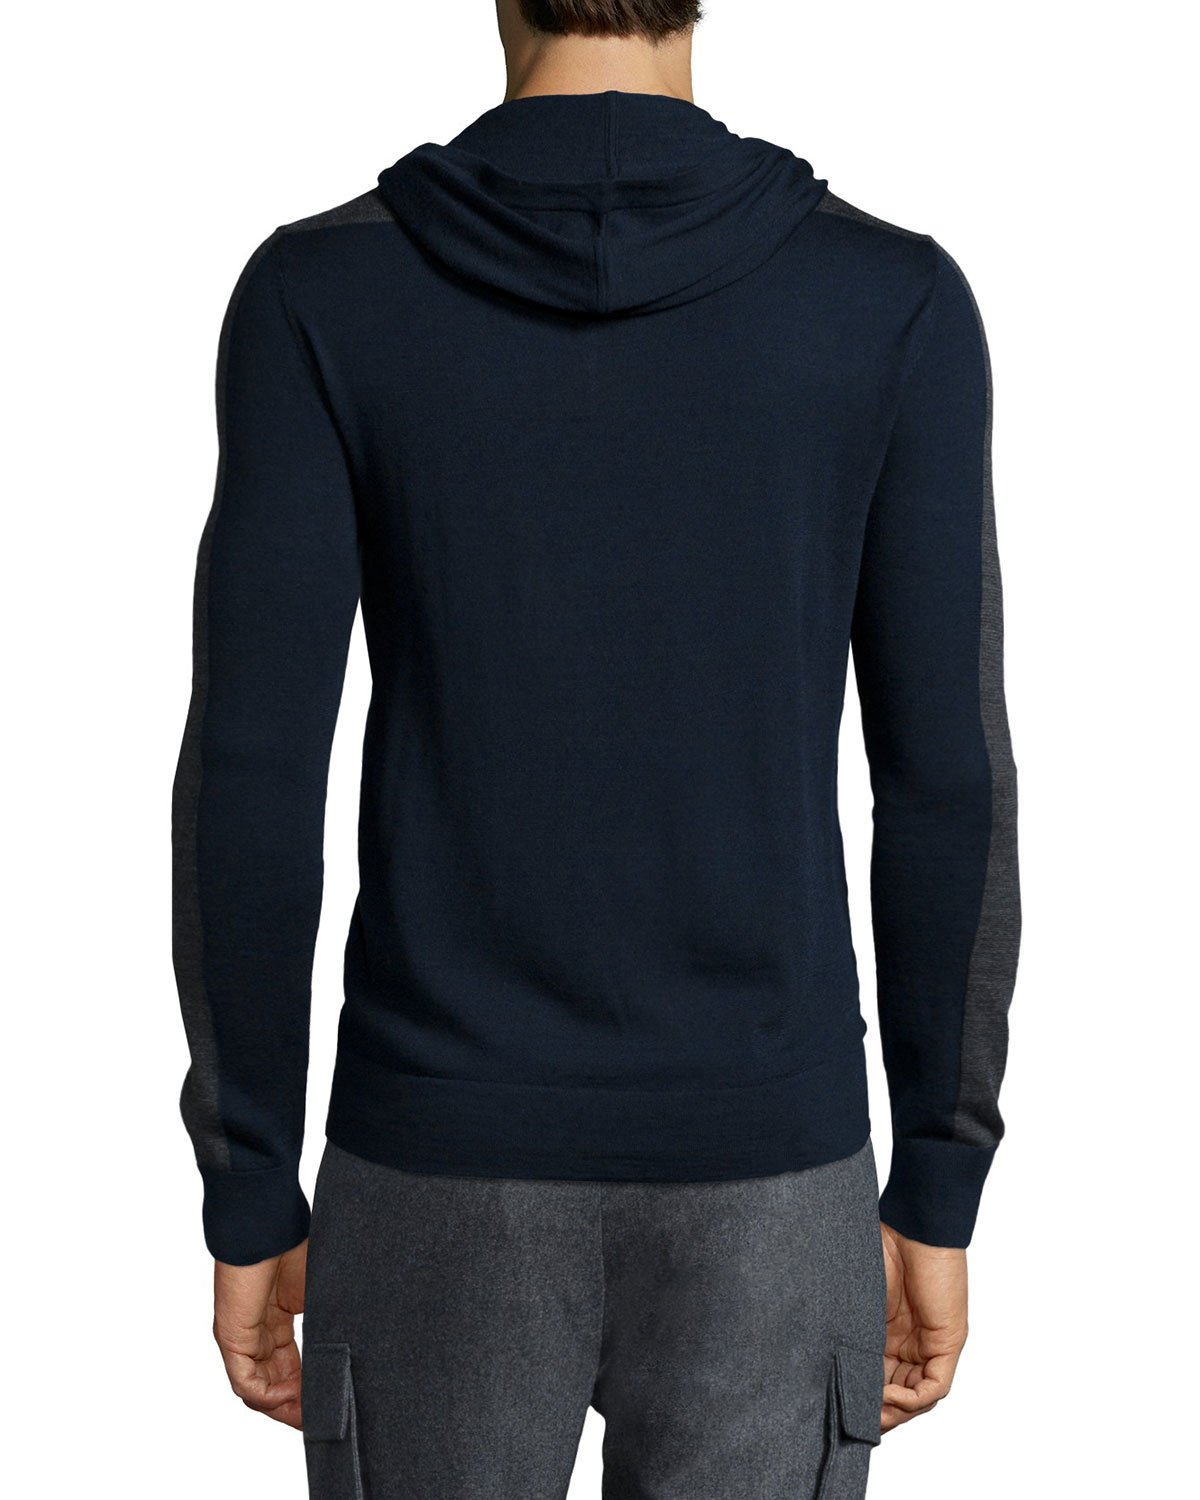 michael kors colorblock hooded pullover sweater in blue for men lyst